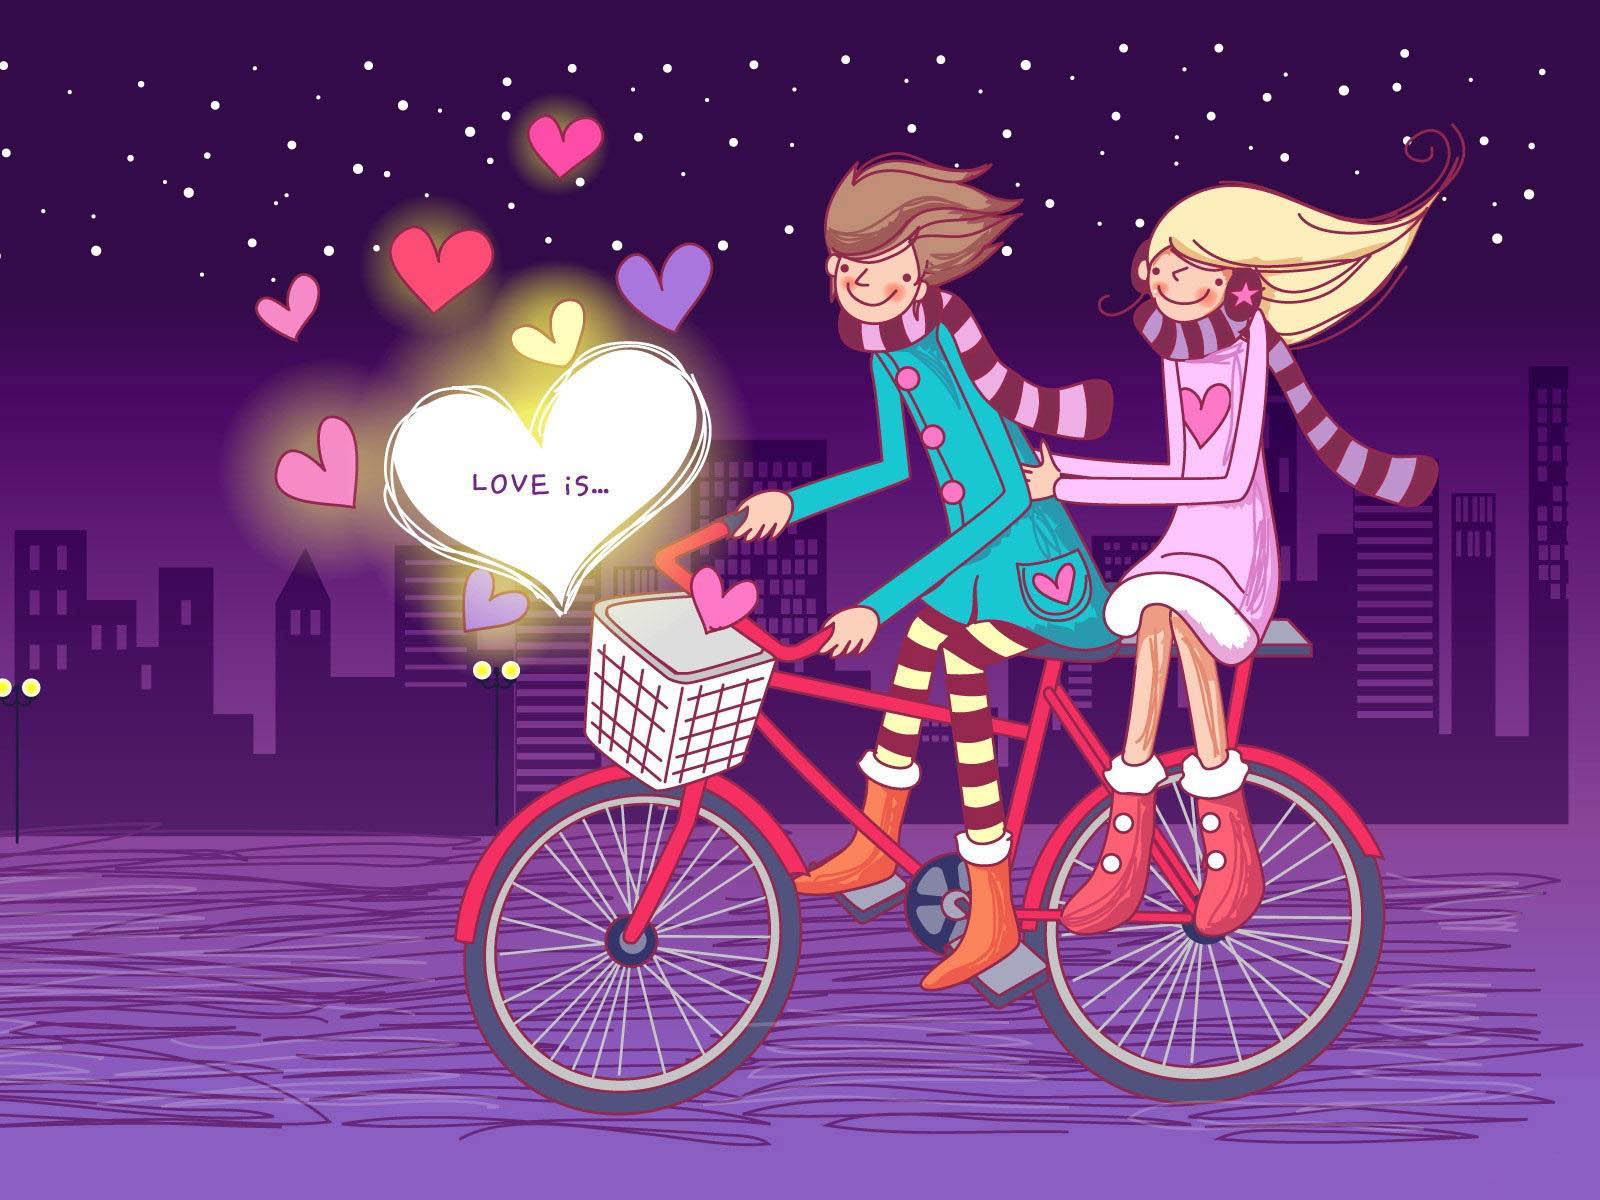 Romantic Love Wallpapers - Screensaver